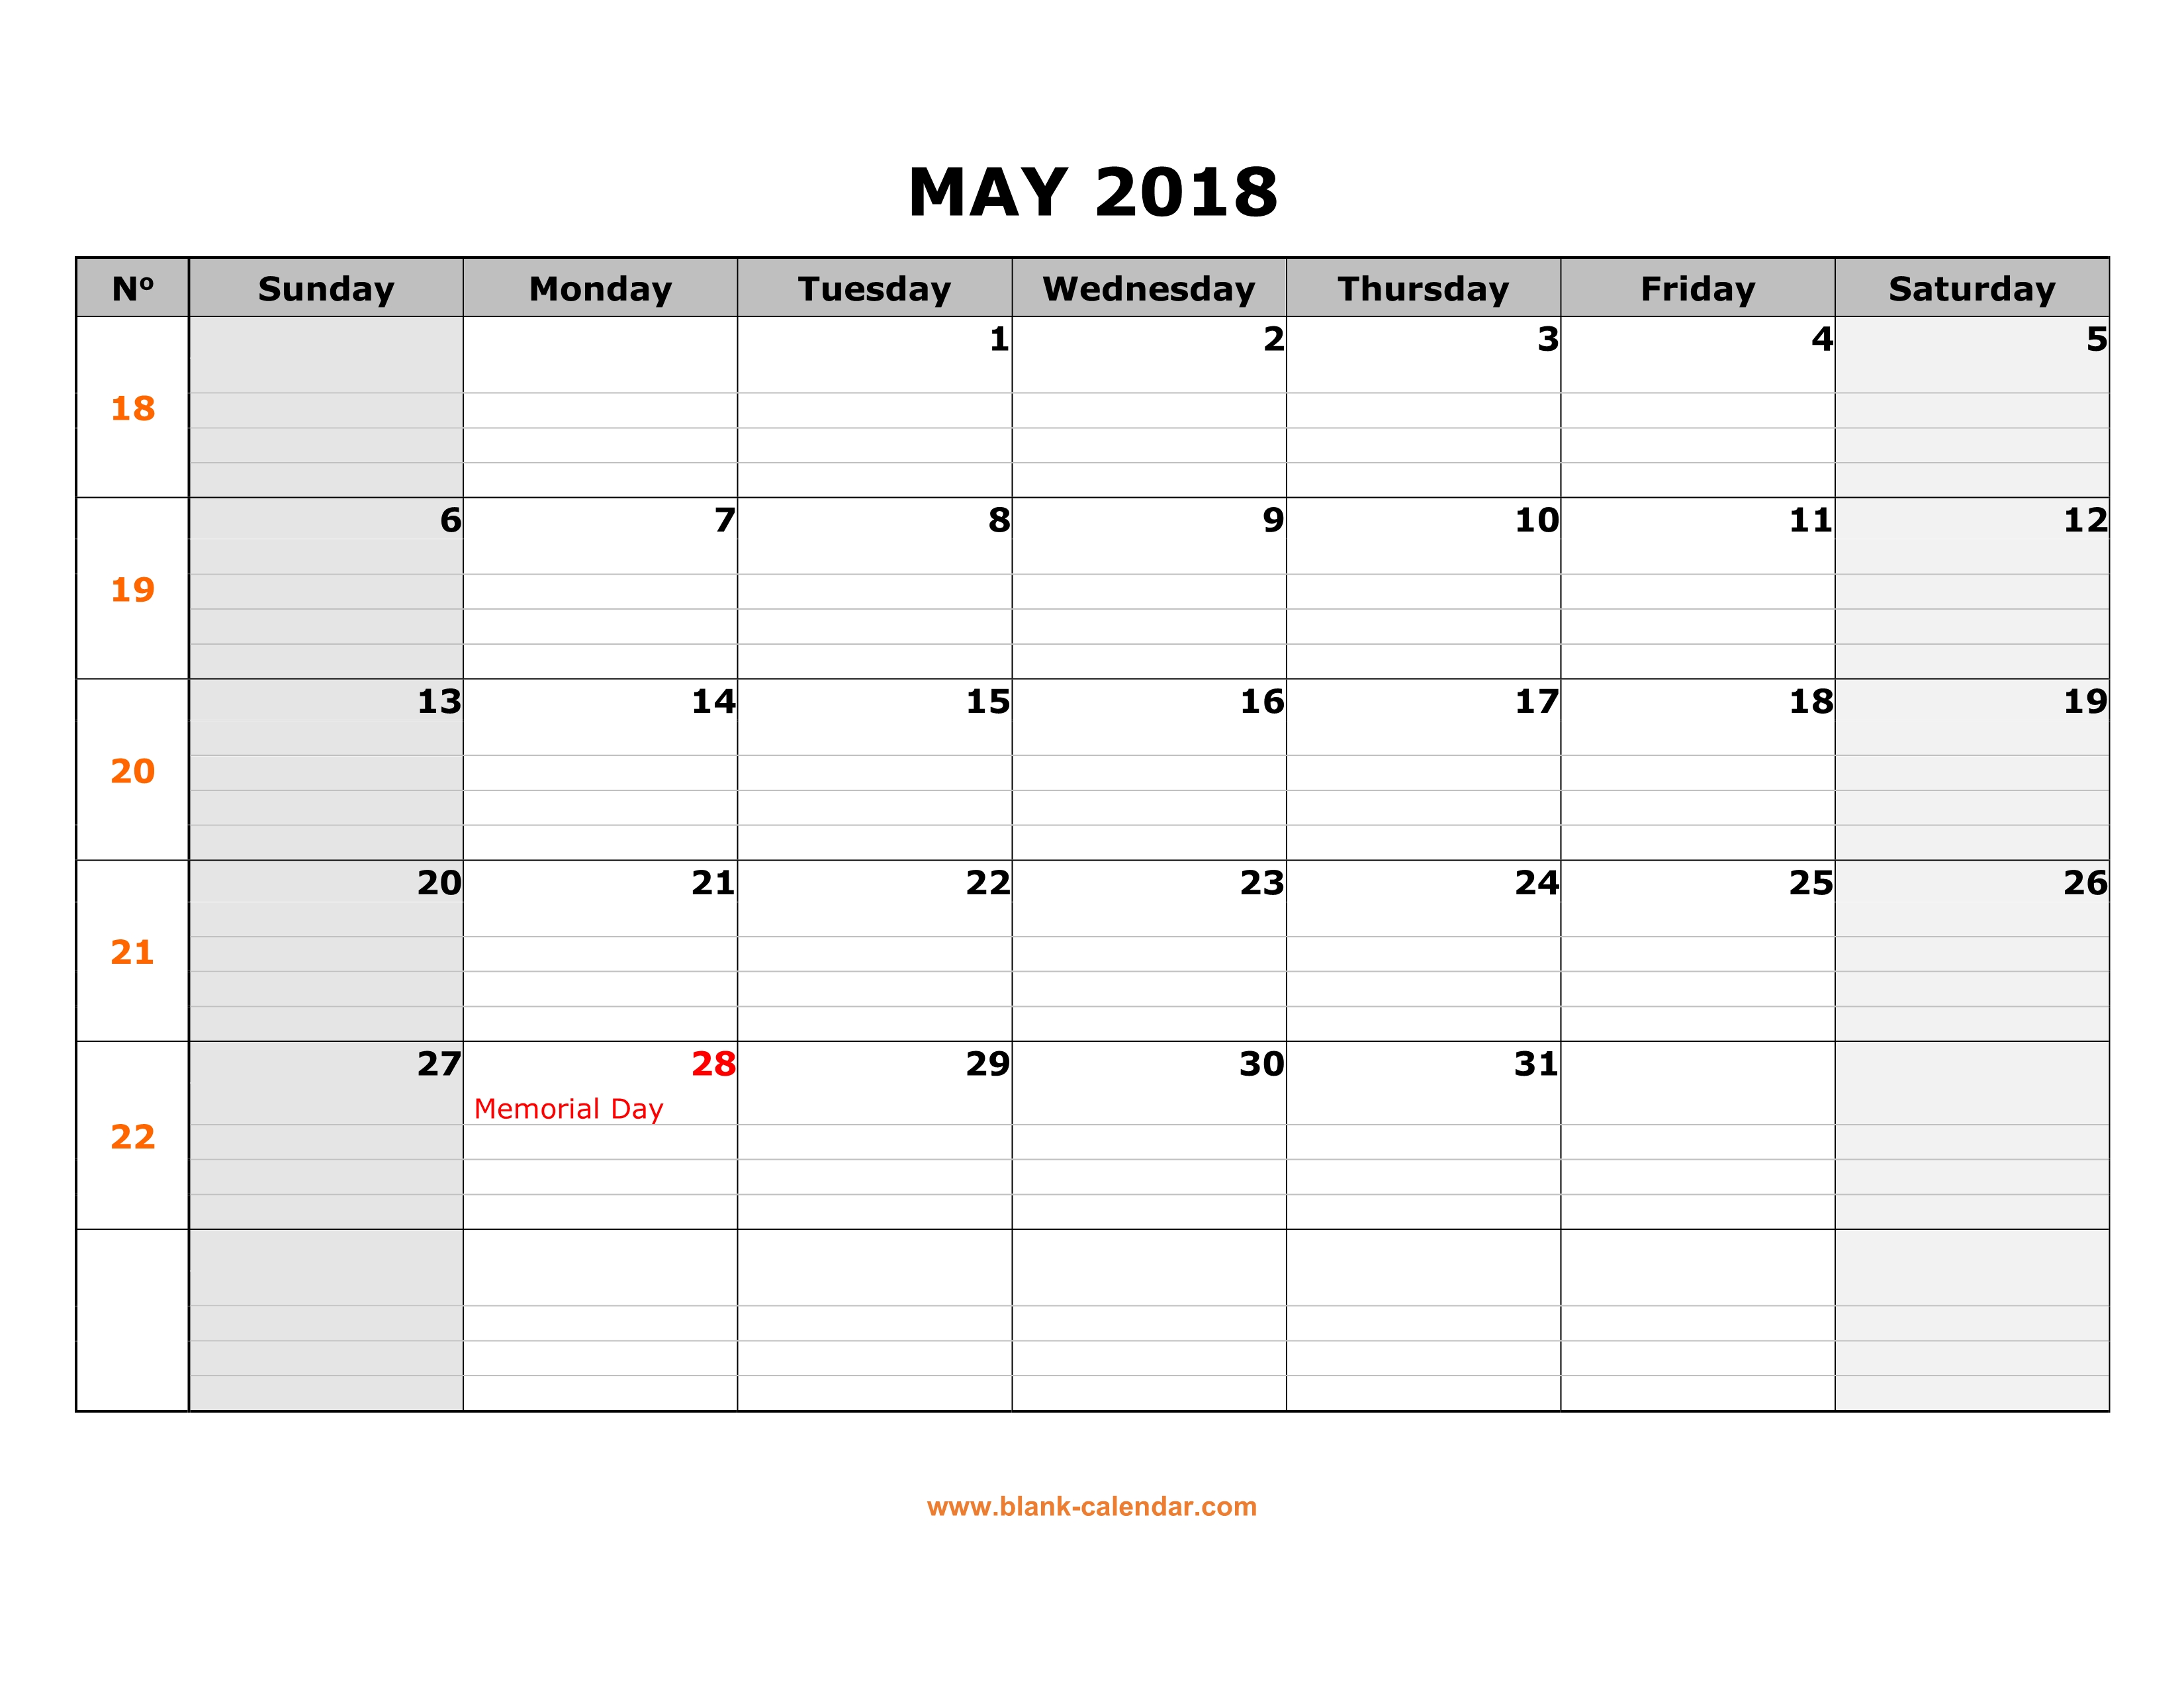 free download printable may 2018 calendar large box grid space for